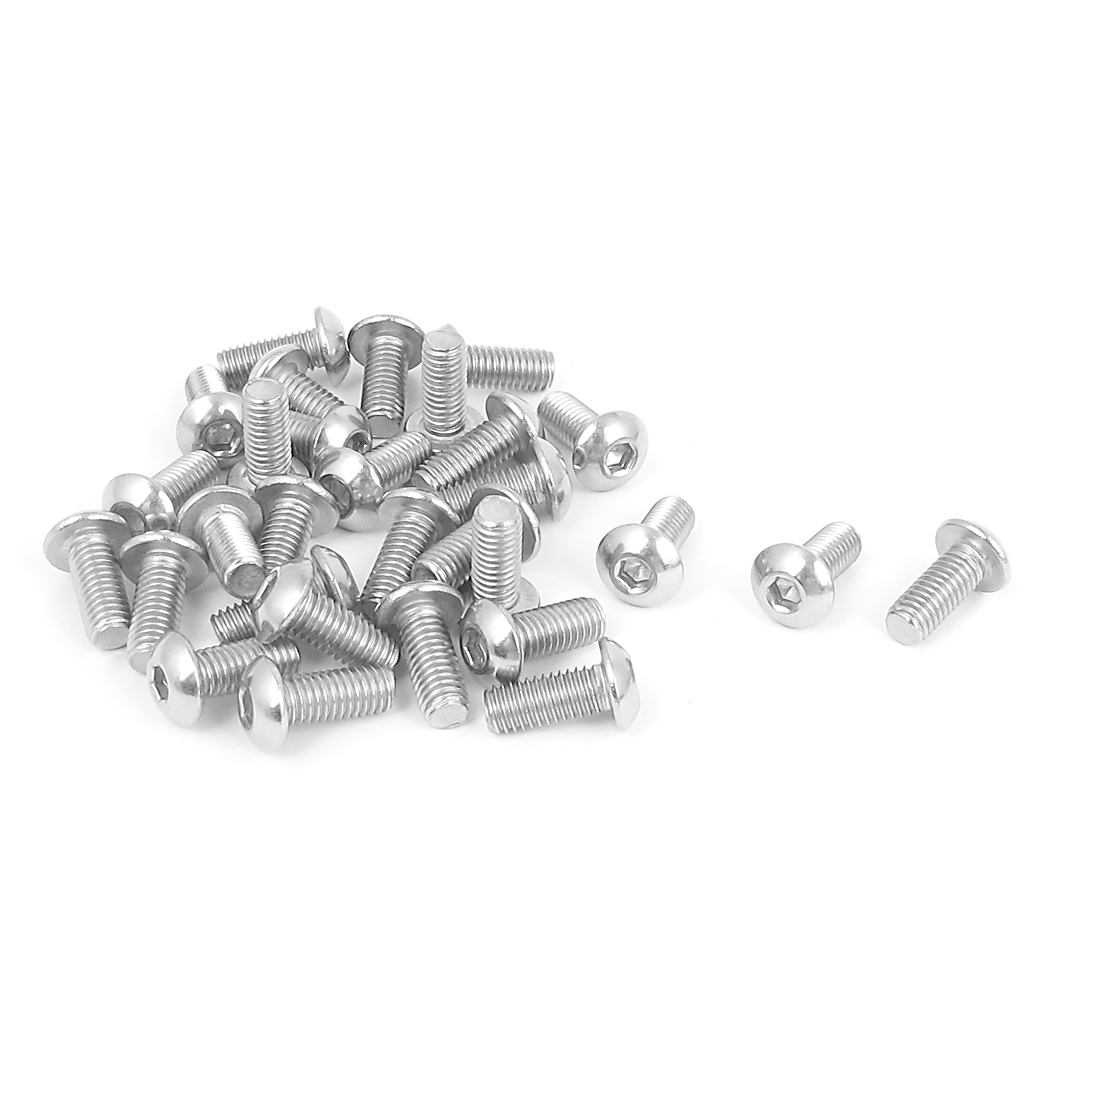 M5x12mm 304 Stainless Steel Hex Socket Machine Countersunk Round Head Screw Bolts 30PCS